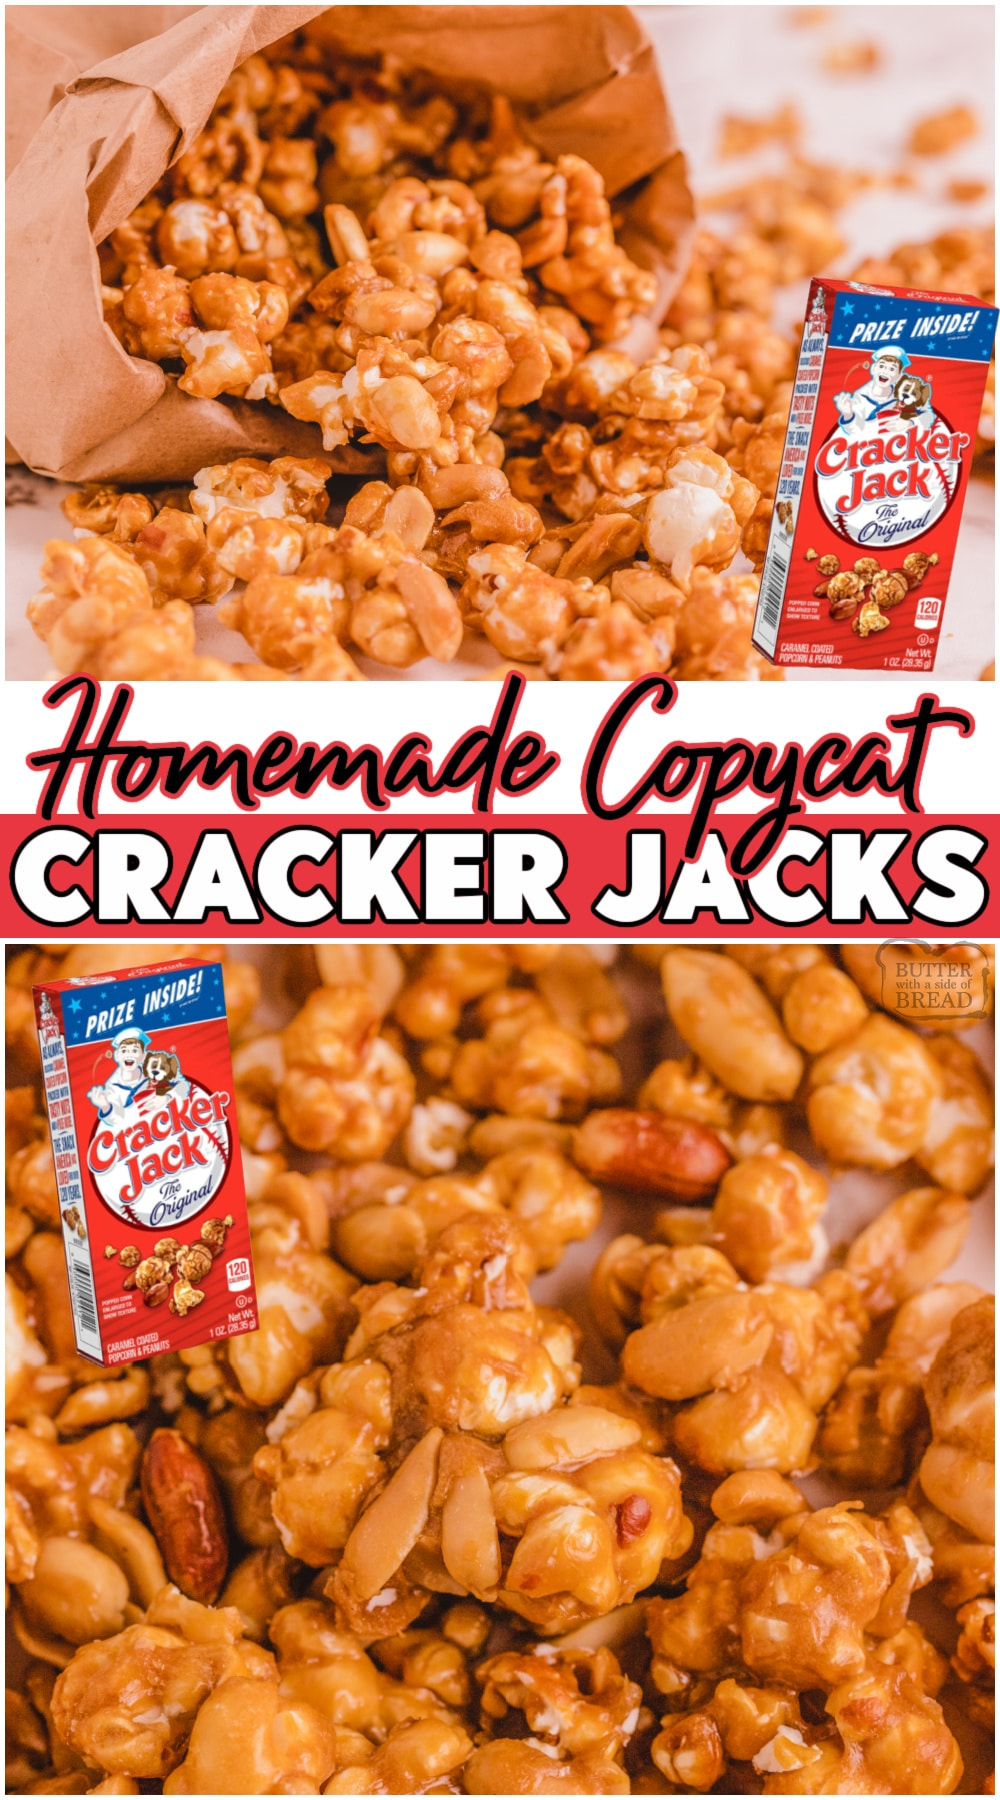 Copycat Cracker Jacks made with popcorn, butter, brown sugar & vanilla! Sweet caramel coated popcorn and peanut mix that's easily made at home! #popcorn #caramel #peanuts #CrackerJacks #easyrecipe from BUTTER WITH A SIDE OF BREAD